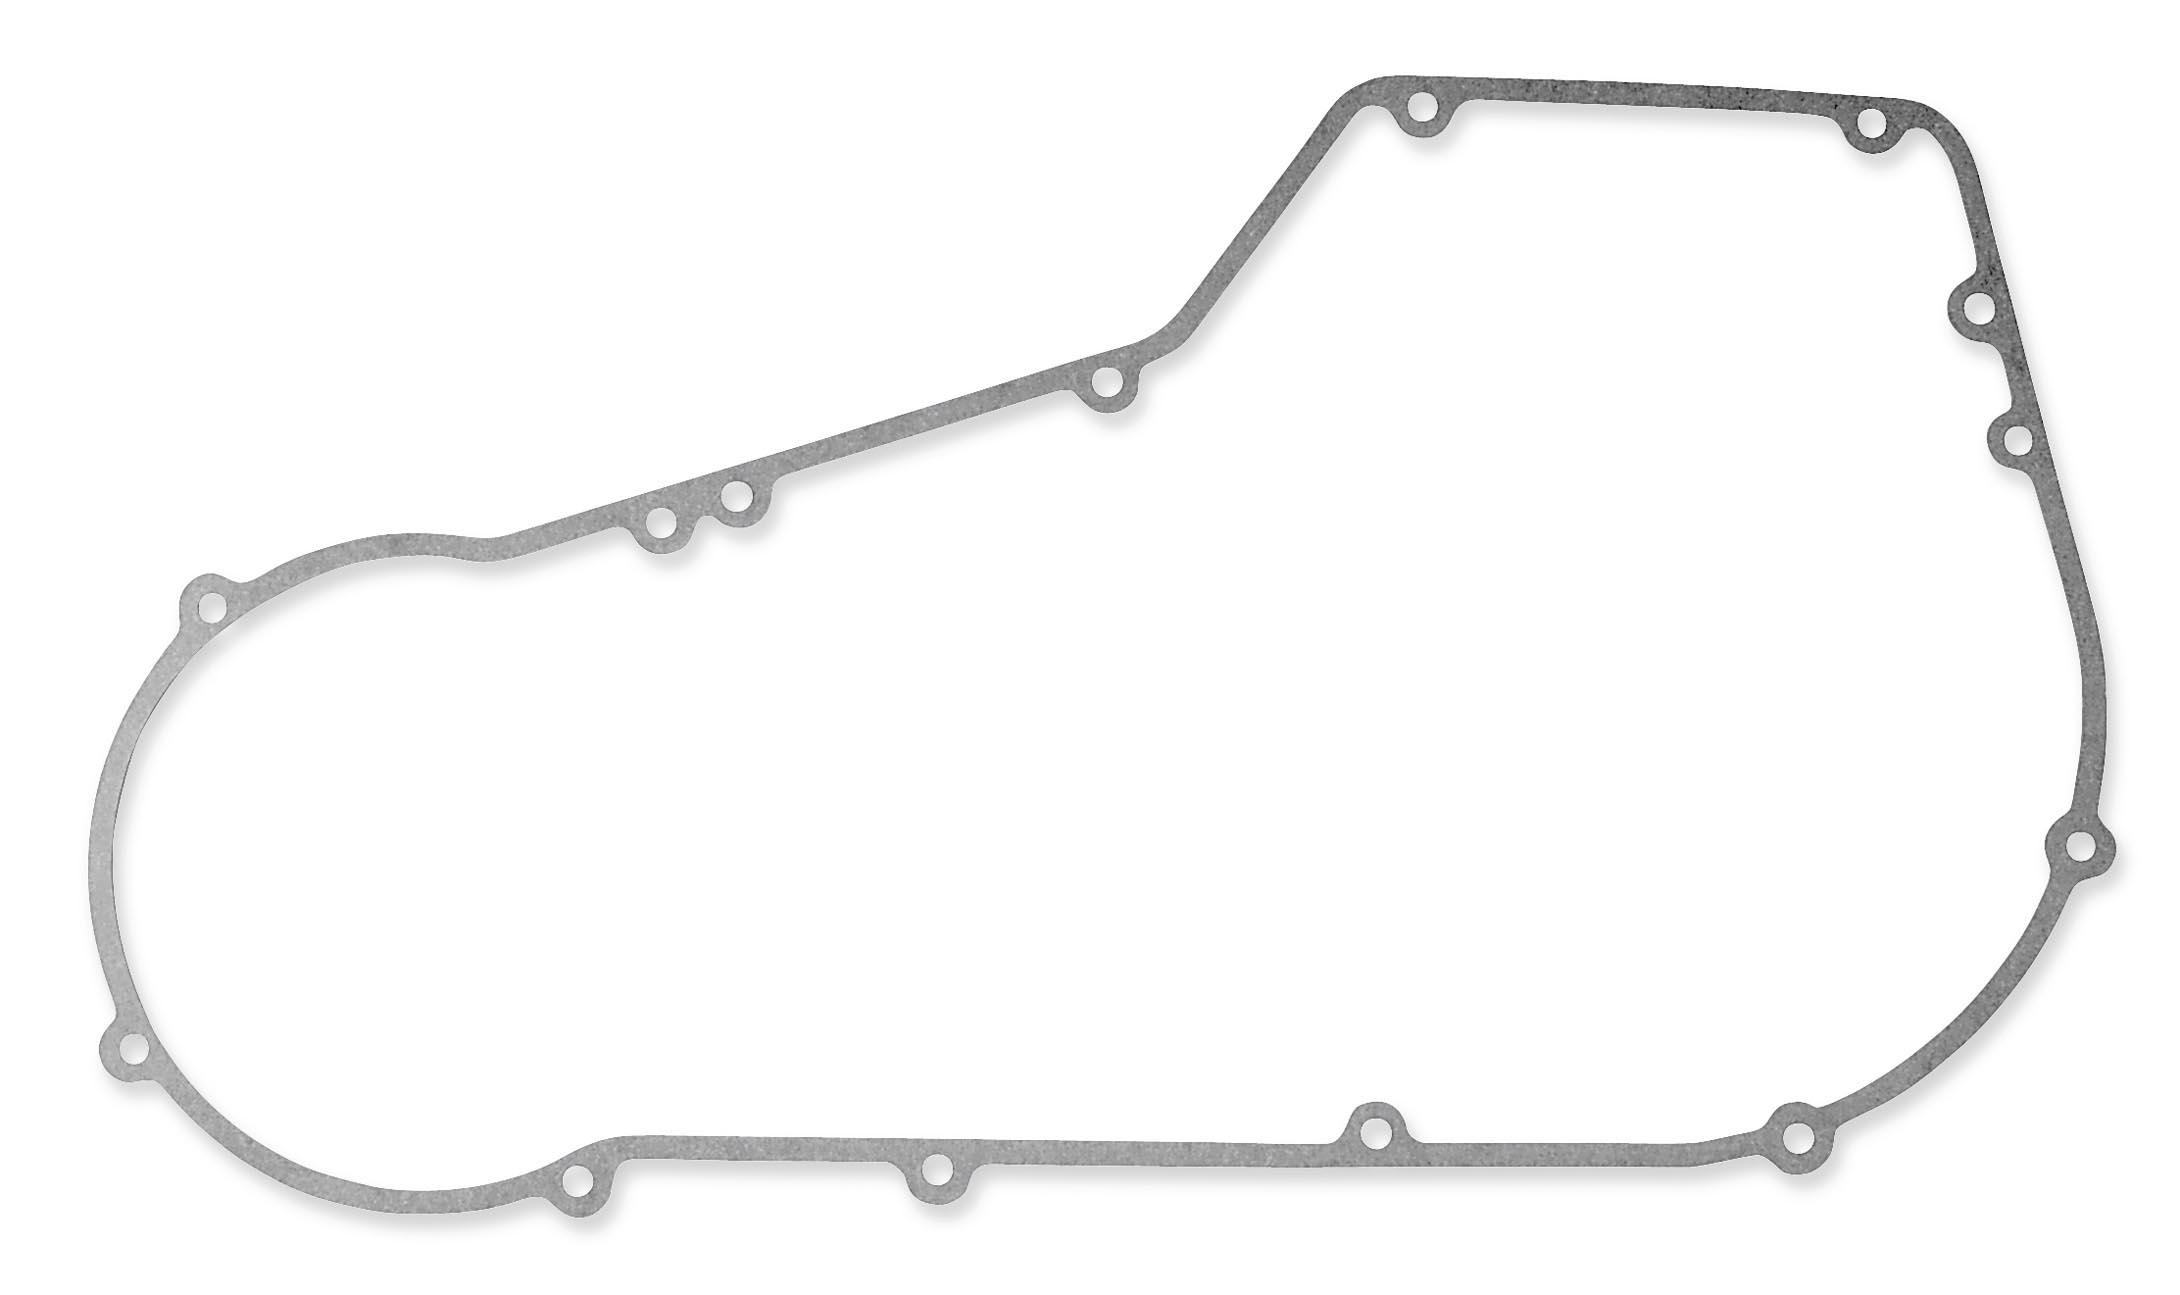 Primary Cover Gasket 34901-85A